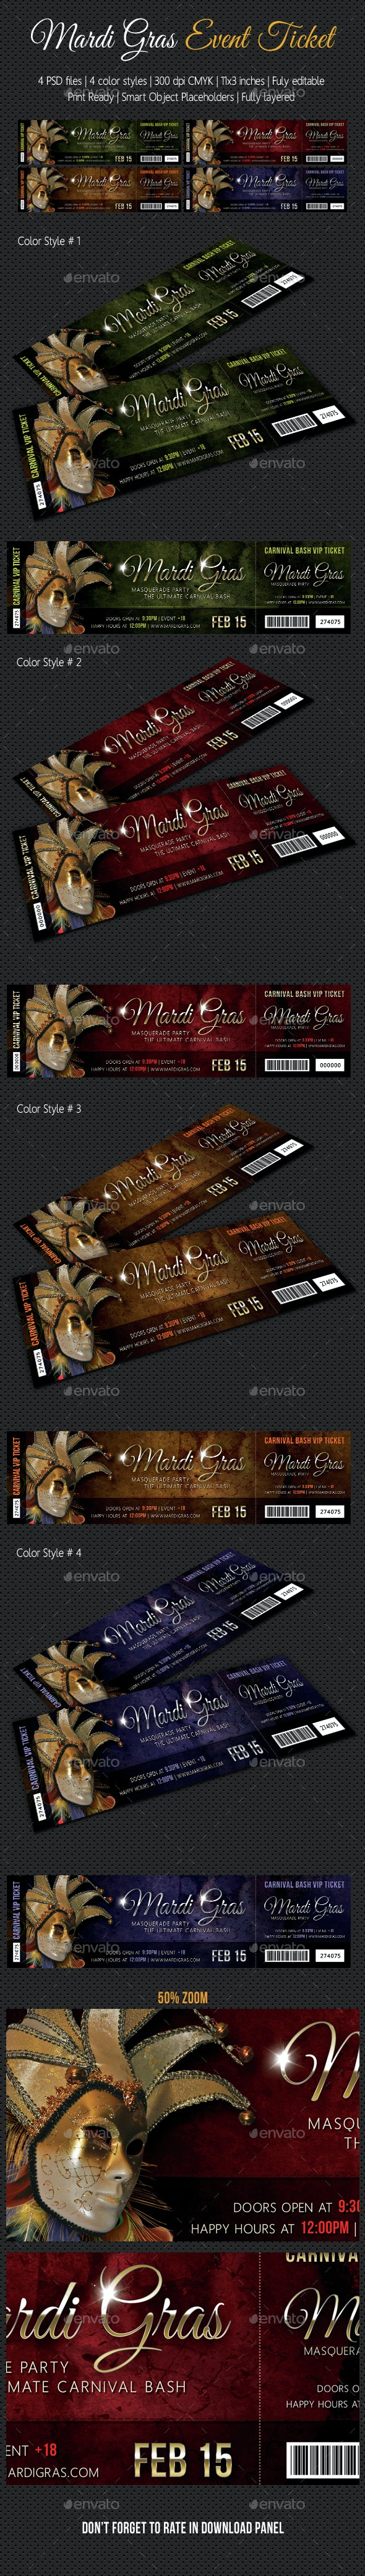 Mardi Gras Carnival Party Event Ticket - Cards & Invites Print Templates